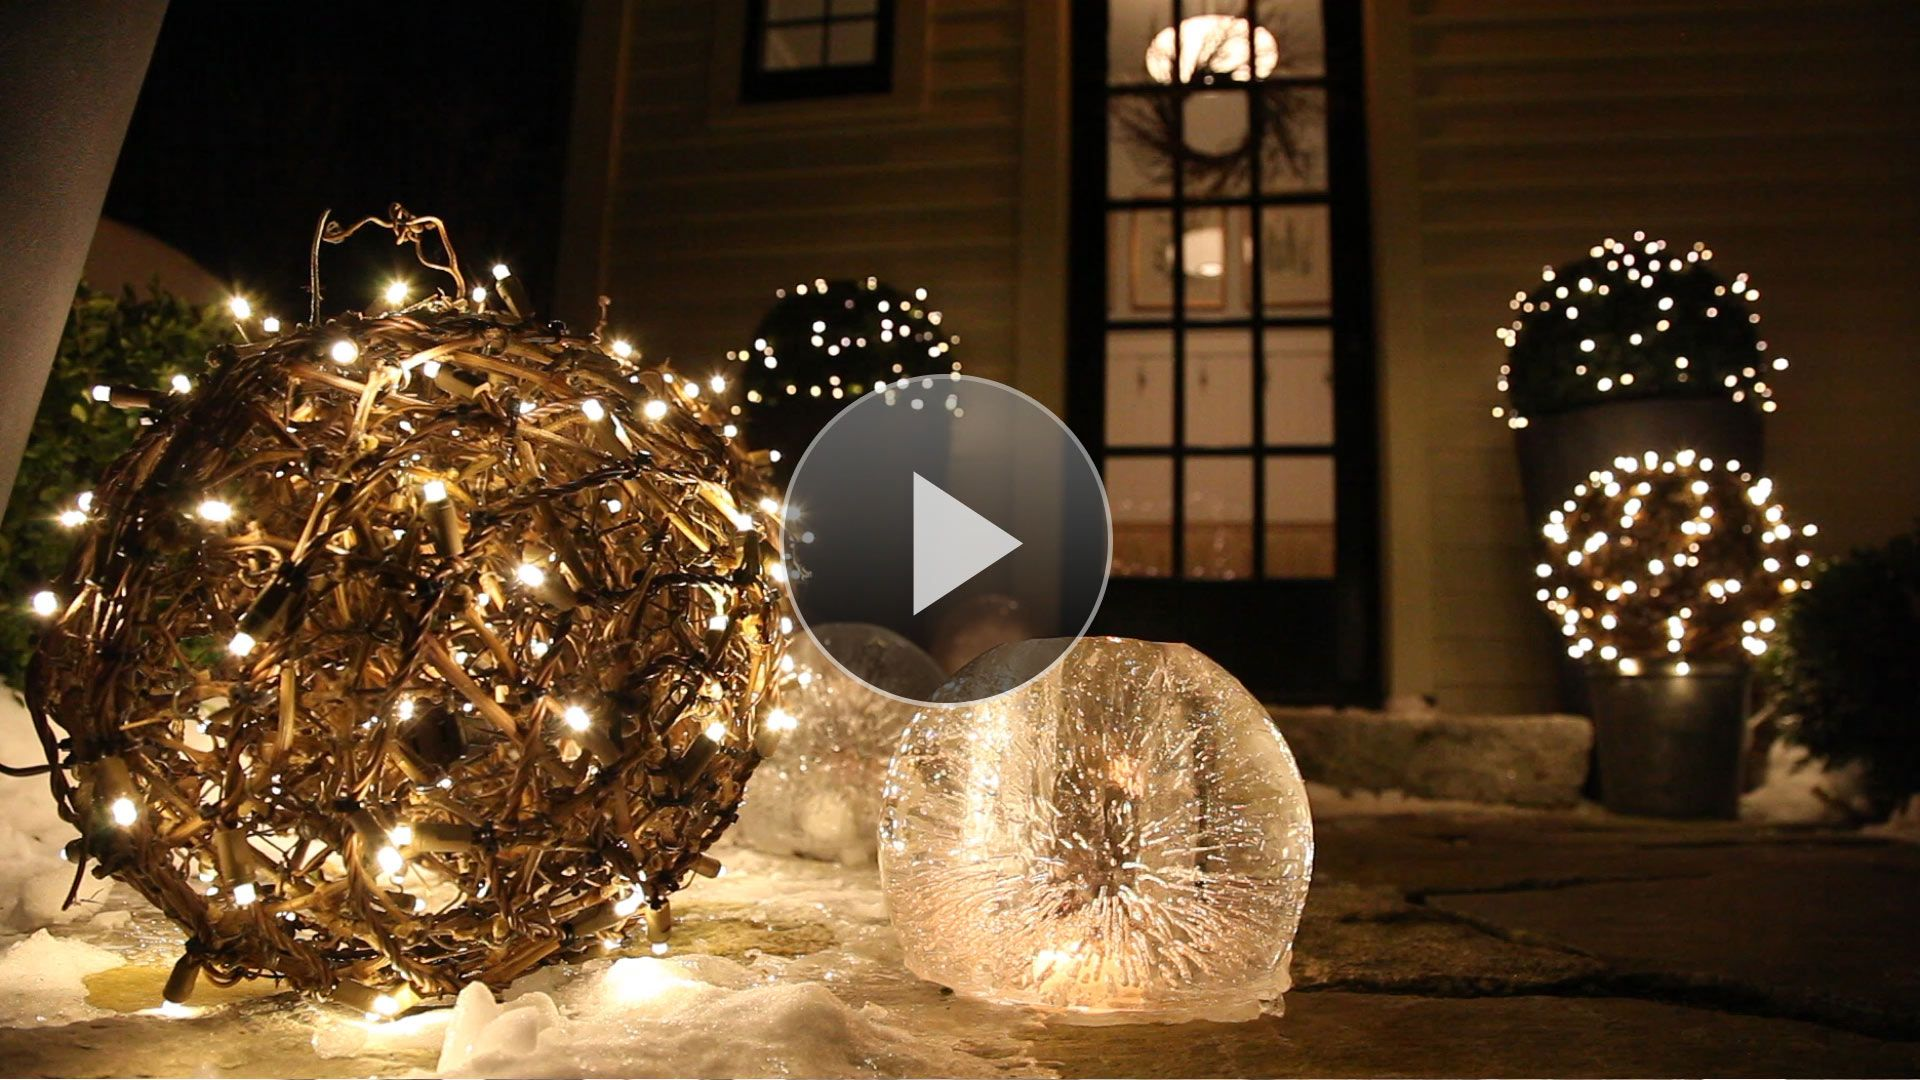 Superbe Outdoor Christmas Lighting: Surprising Ways To Decorate